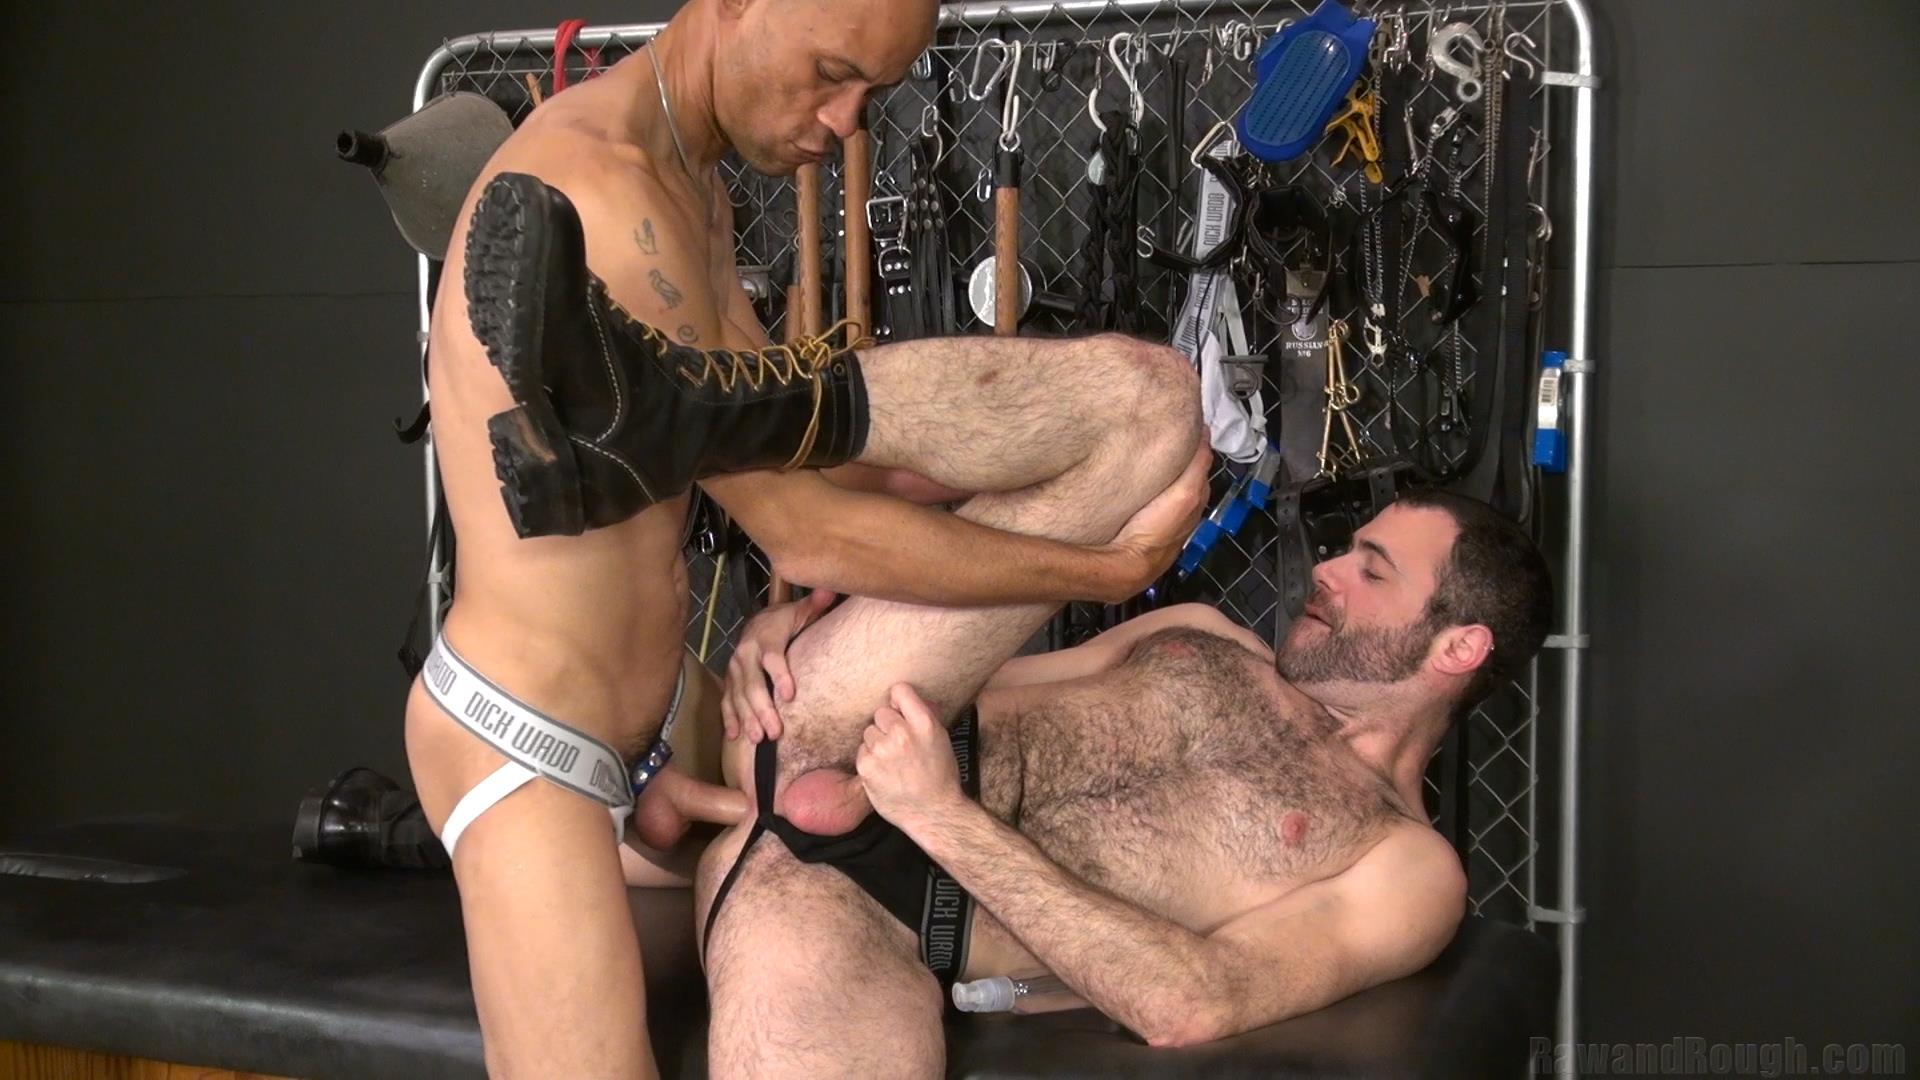 Raw and Rough Dusty Williams and Seth Patrick Barebacking A Stranger at A Sex Club Hairy Amateur Gay Porn 01